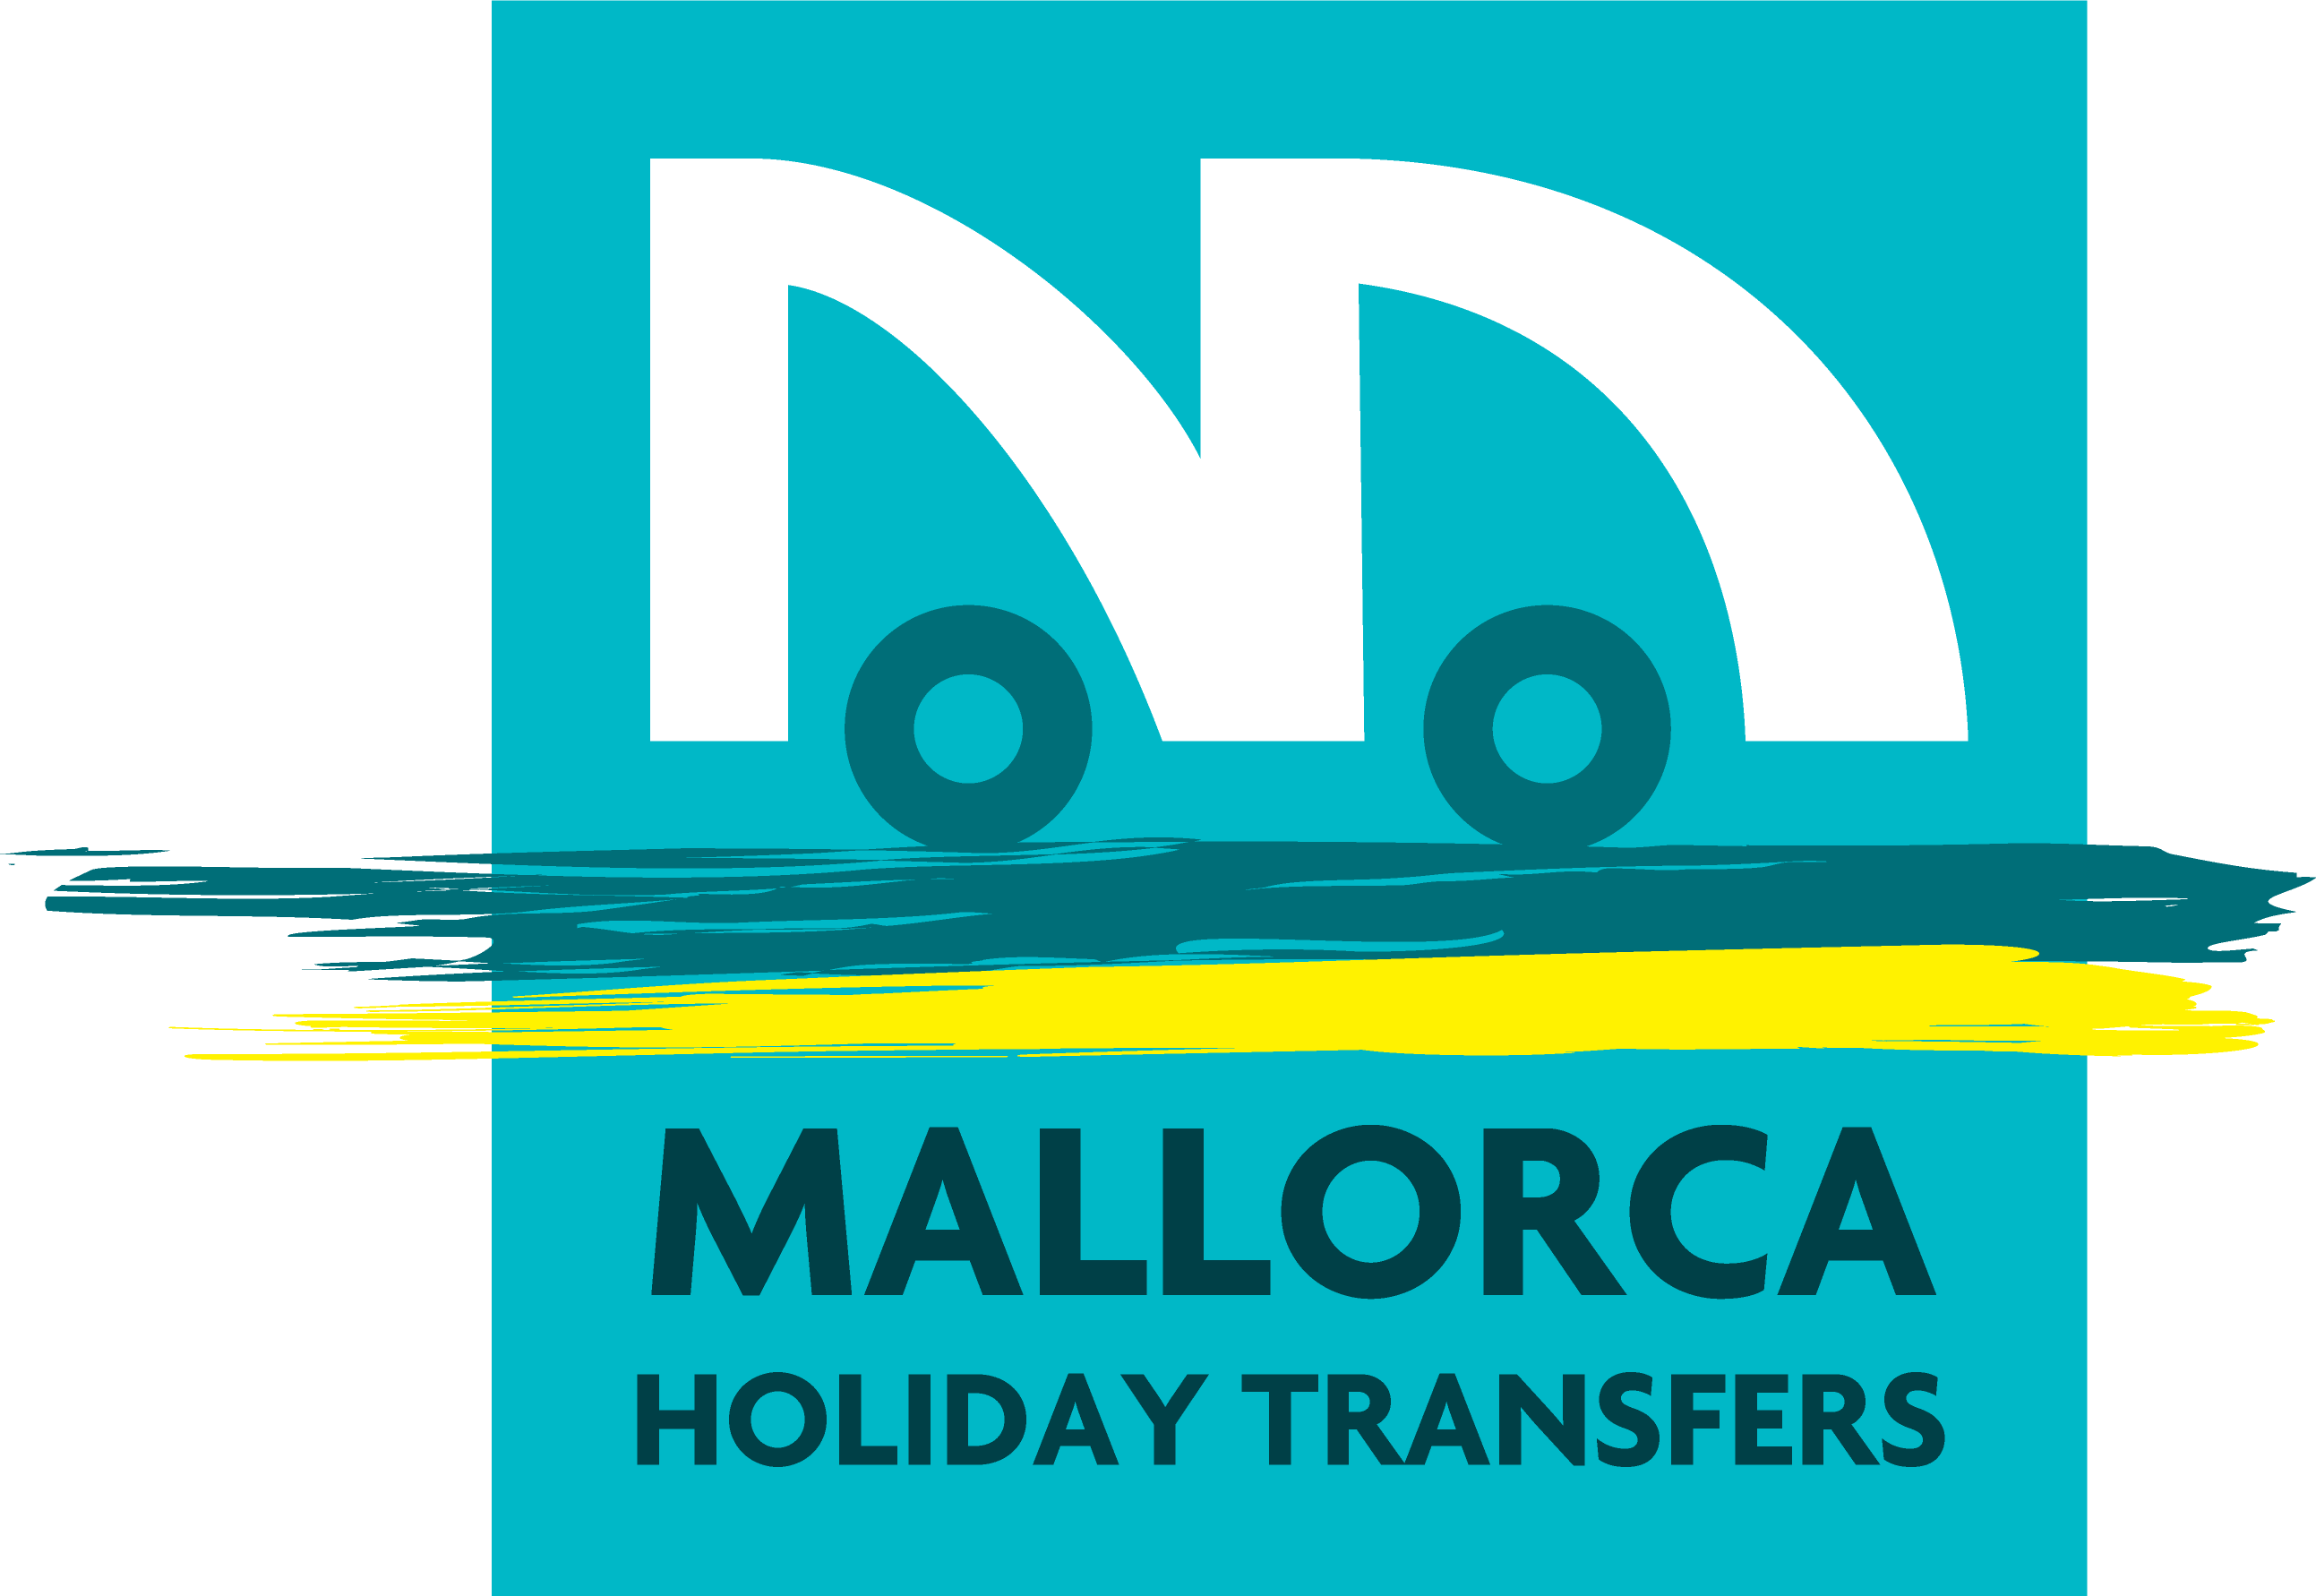 Mallorca Holiday Transfers logo